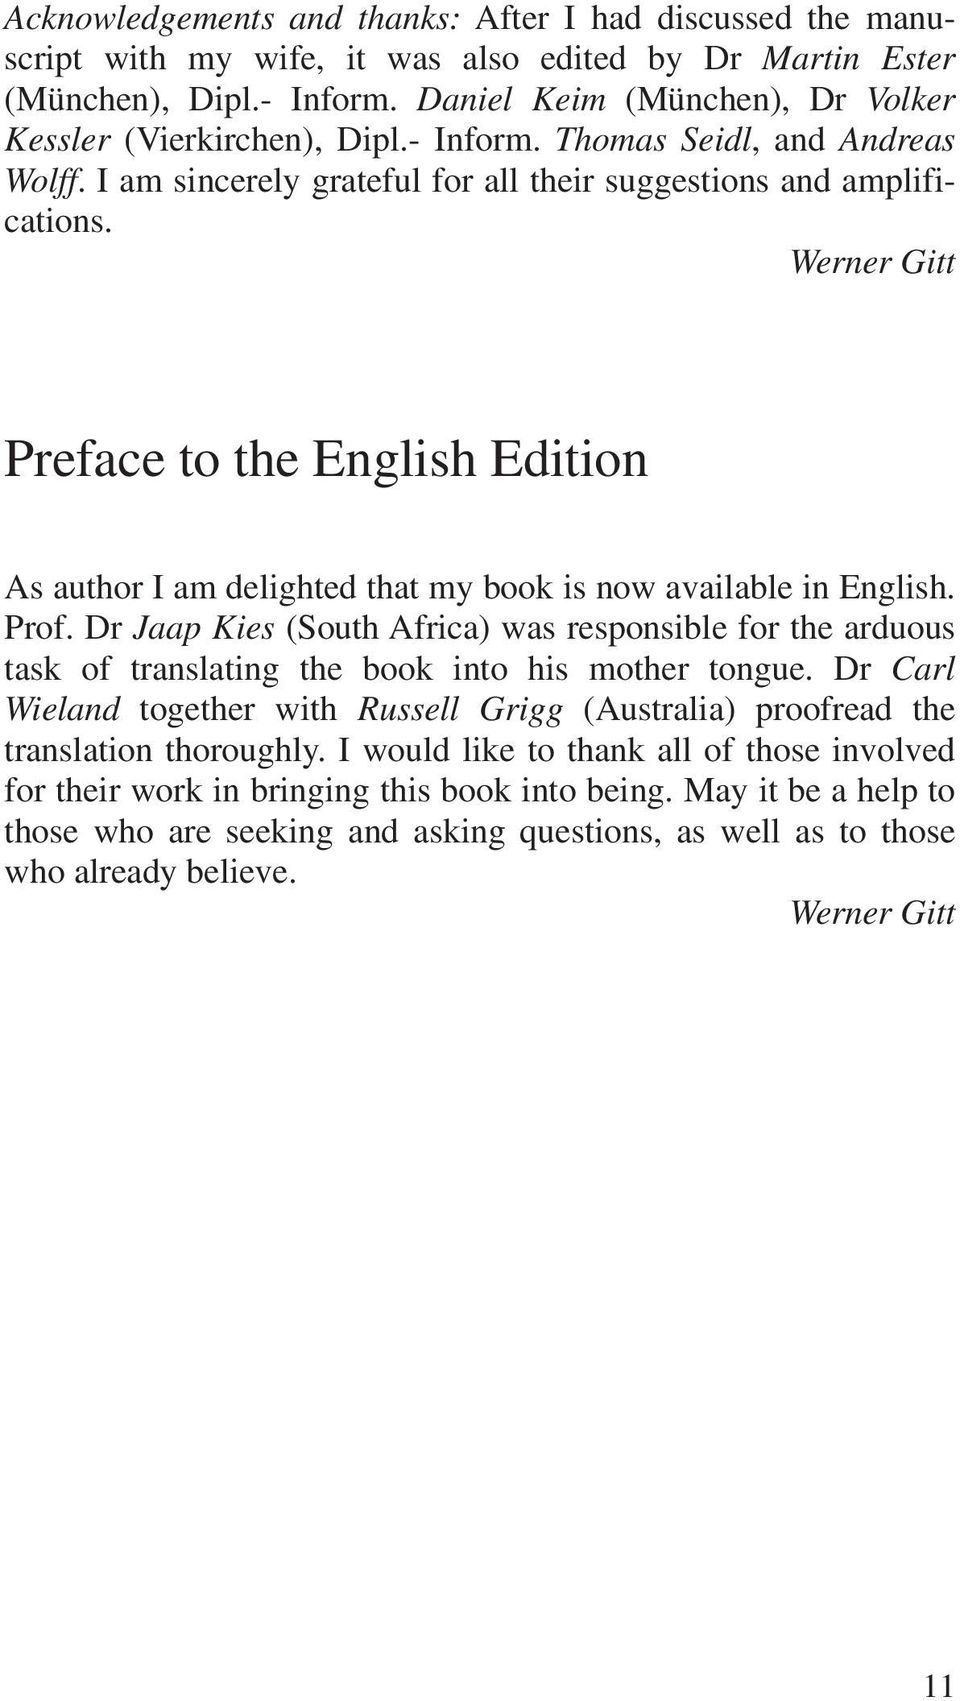 Werner Gitt Preface to the English Edition As author I am delighted that my book is now available in English. Prof.